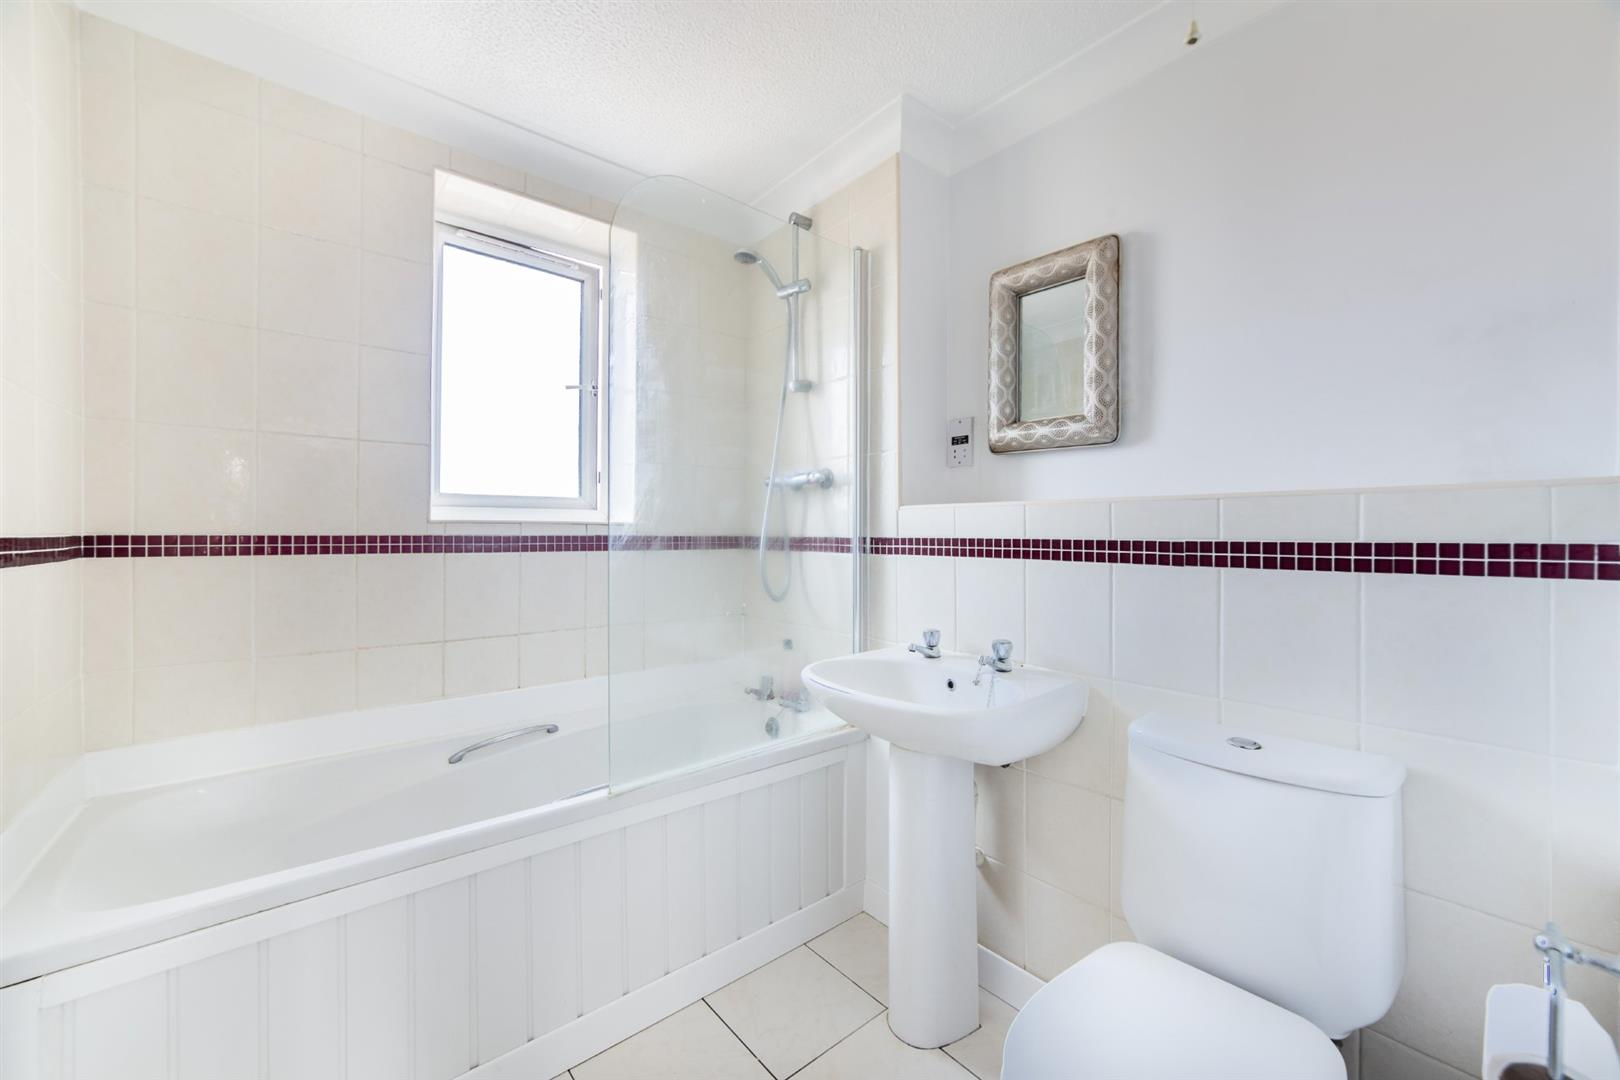 2 bed apartment for sale in Newcastle Upon Tyne, NE6 5BJ 8